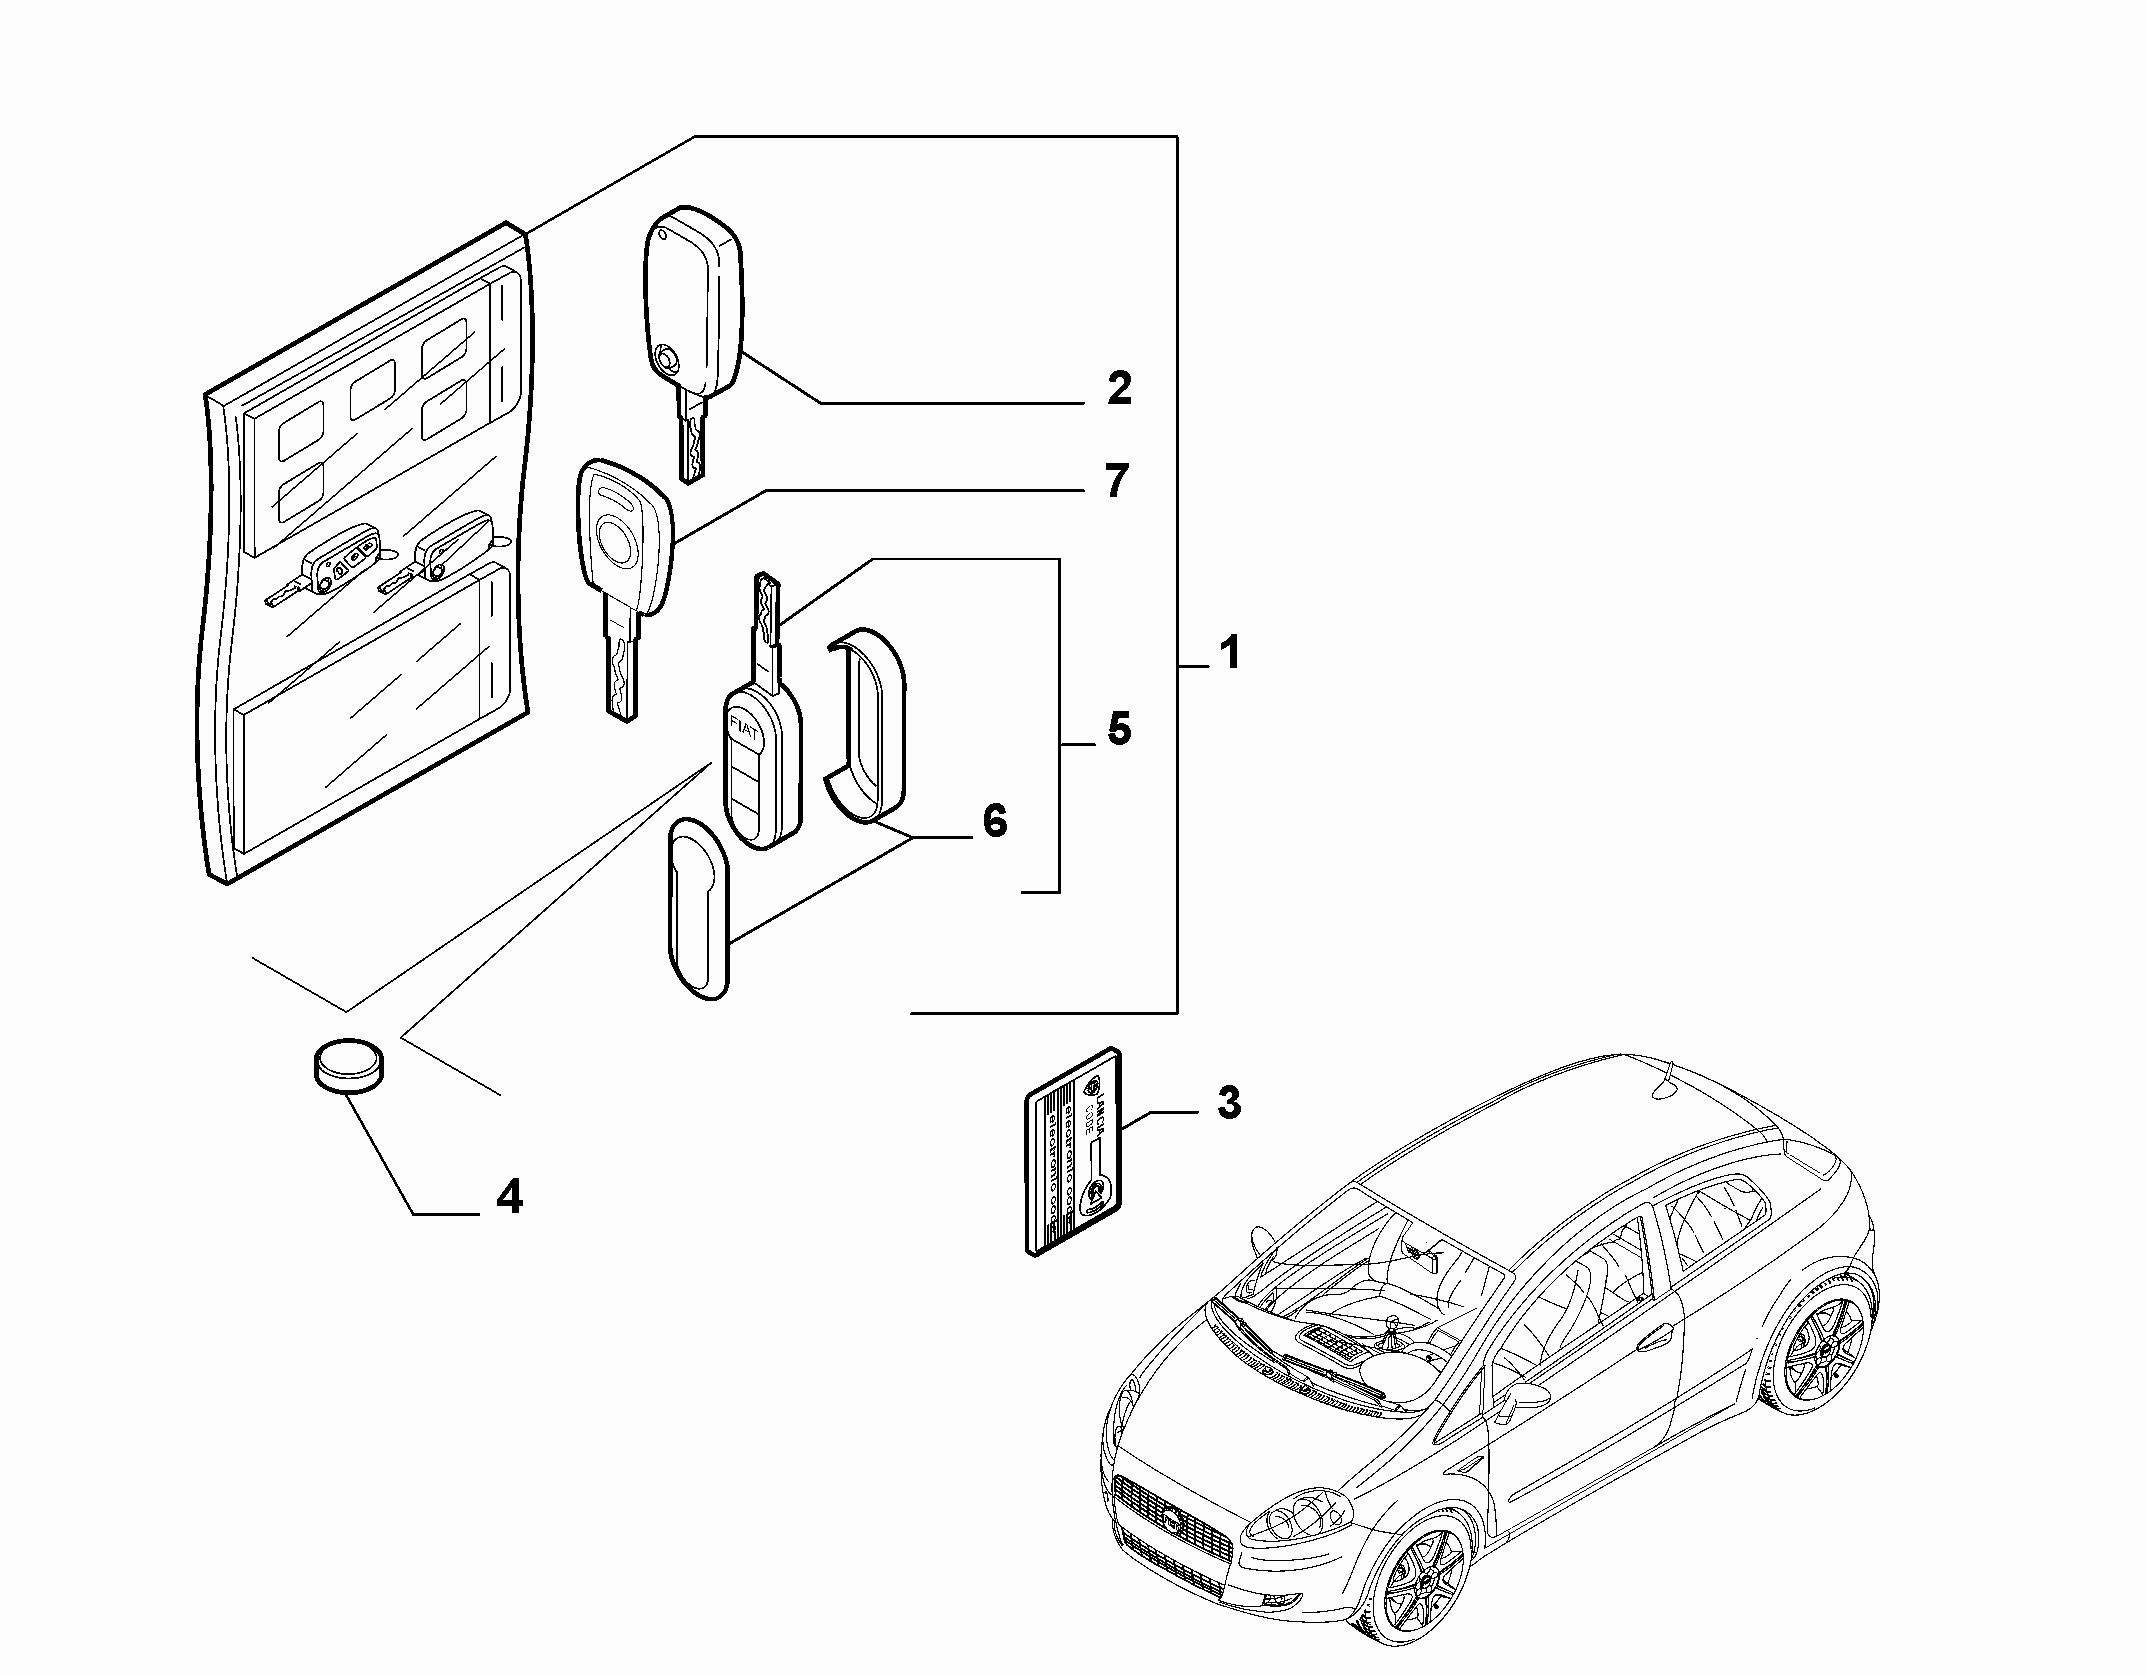 55202-020 KEY KIT AND OPENING SYSTEM